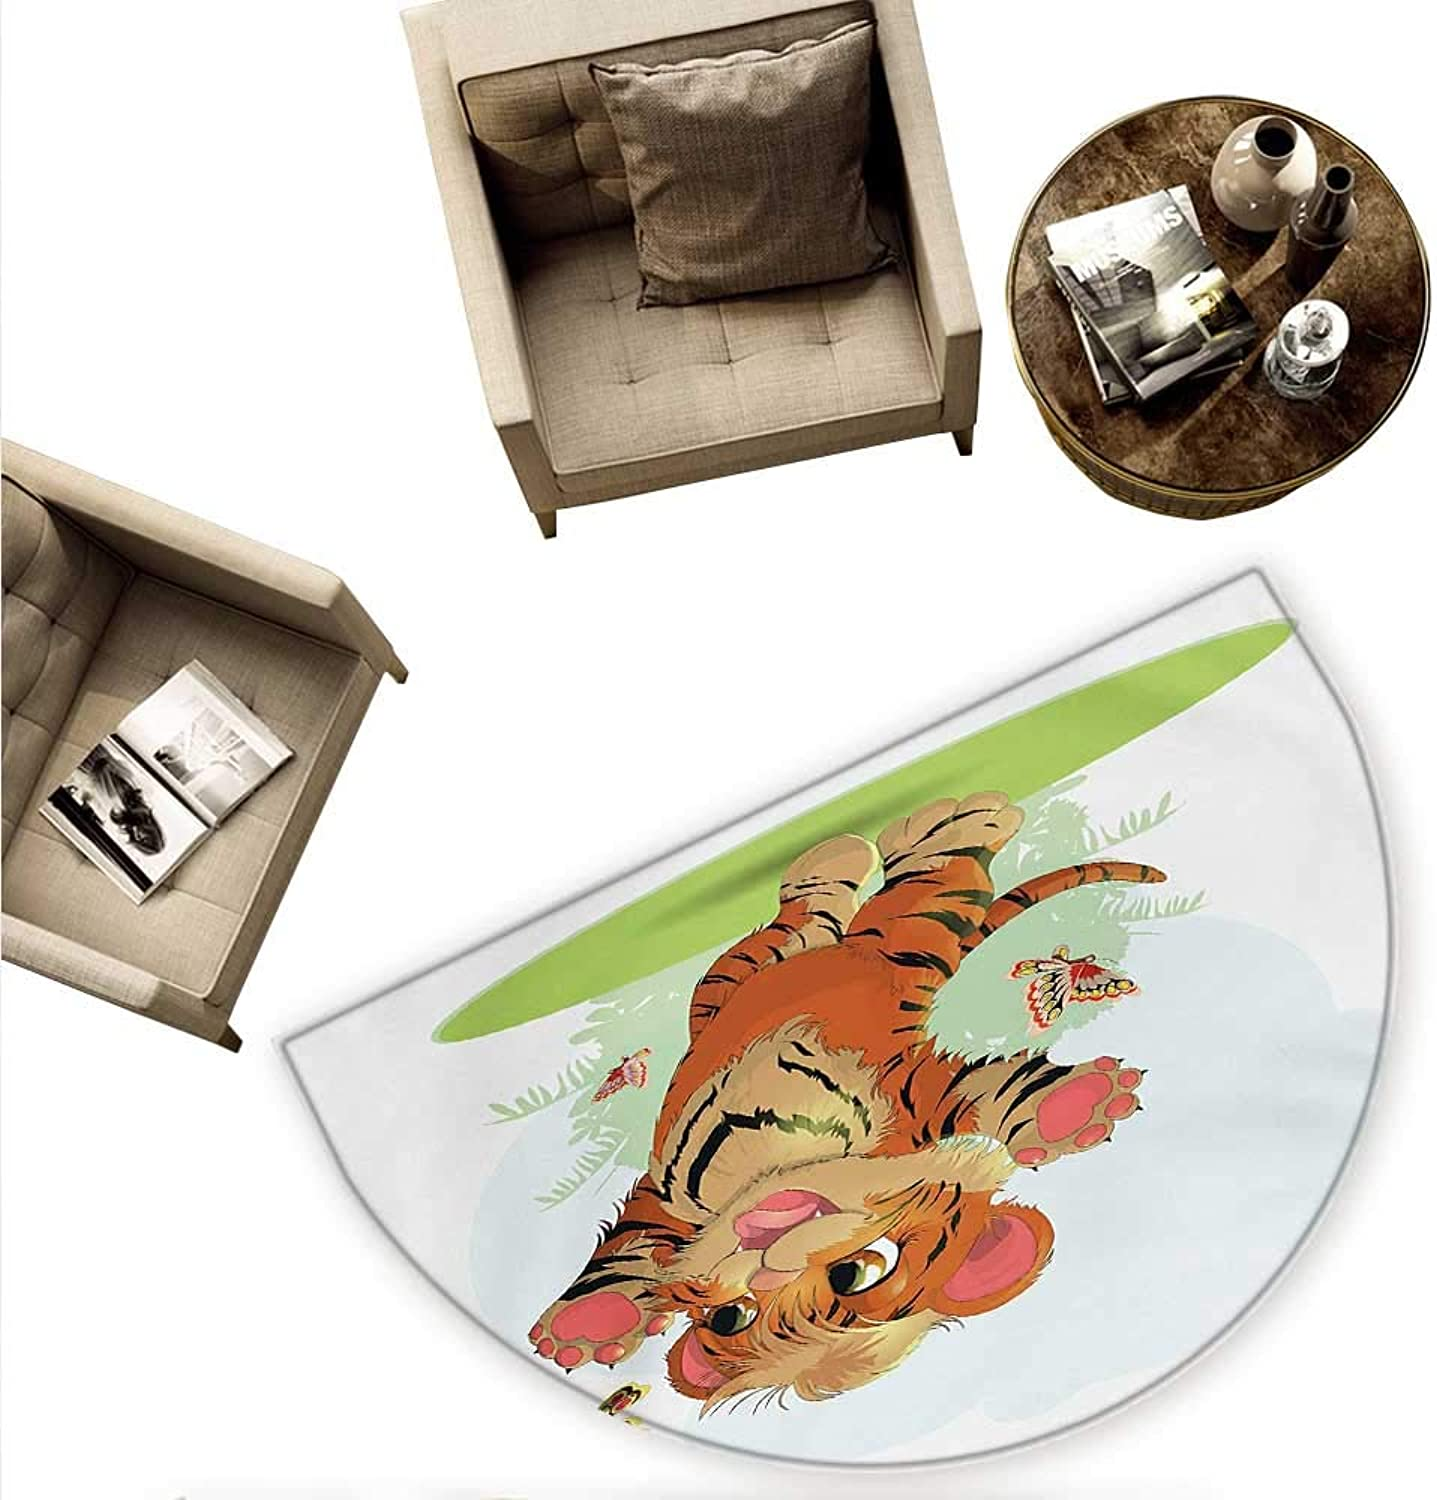 Cartoon Semicircular Cushion Cub Playing with Butterflies in The Meadow Joyful Lively Baby Tiger Cat Entry Door Mat H 74.8  xD 112.2  orange Cream Green